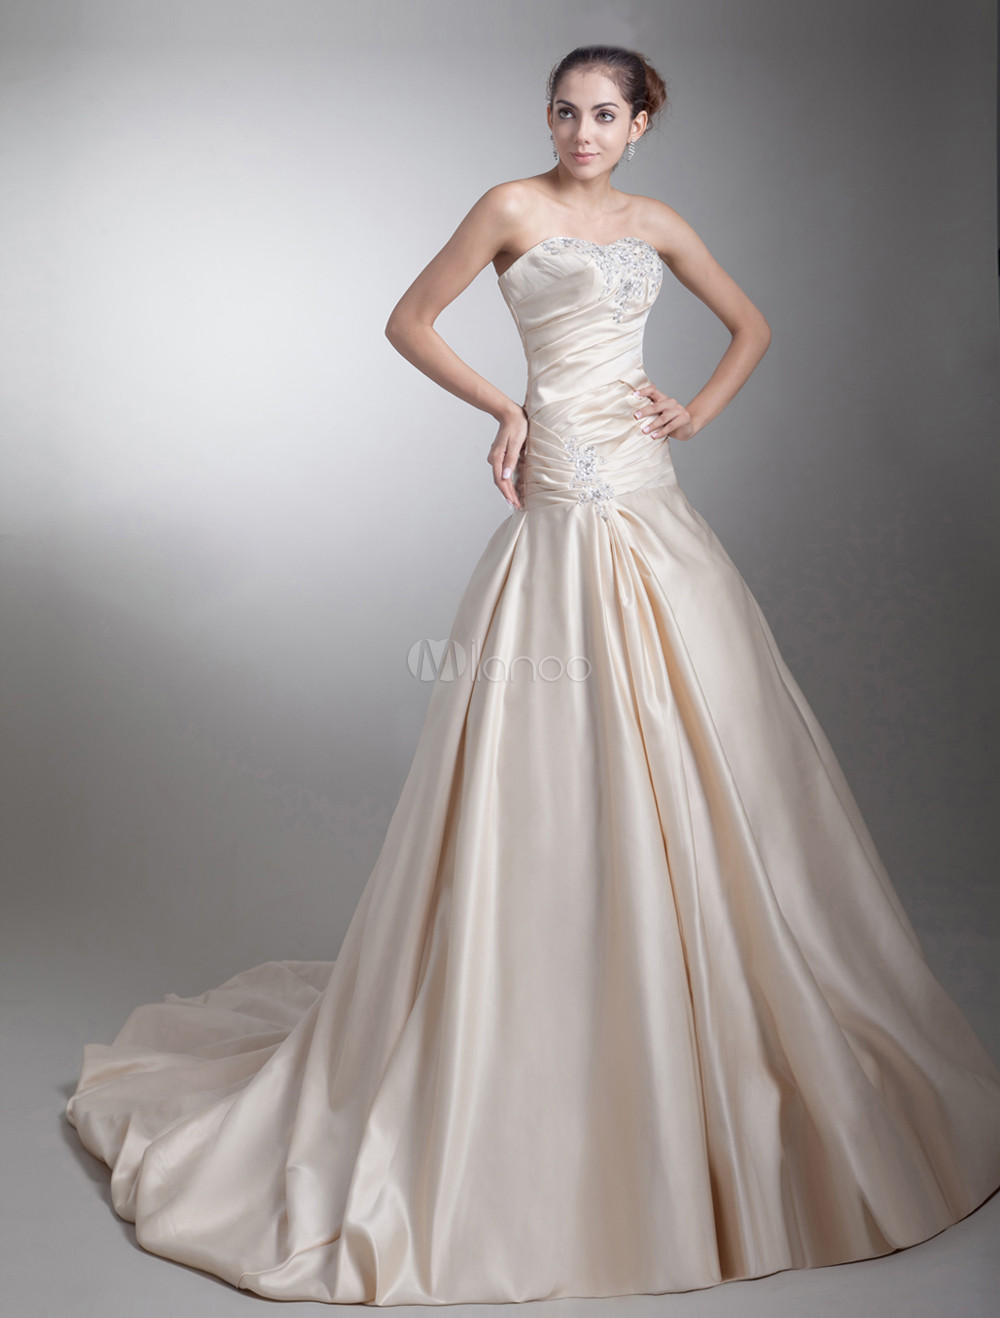 Strapless Beading Taffeta Champagne Brides Wedding Dress with Ball Gown Sweetheart Neck